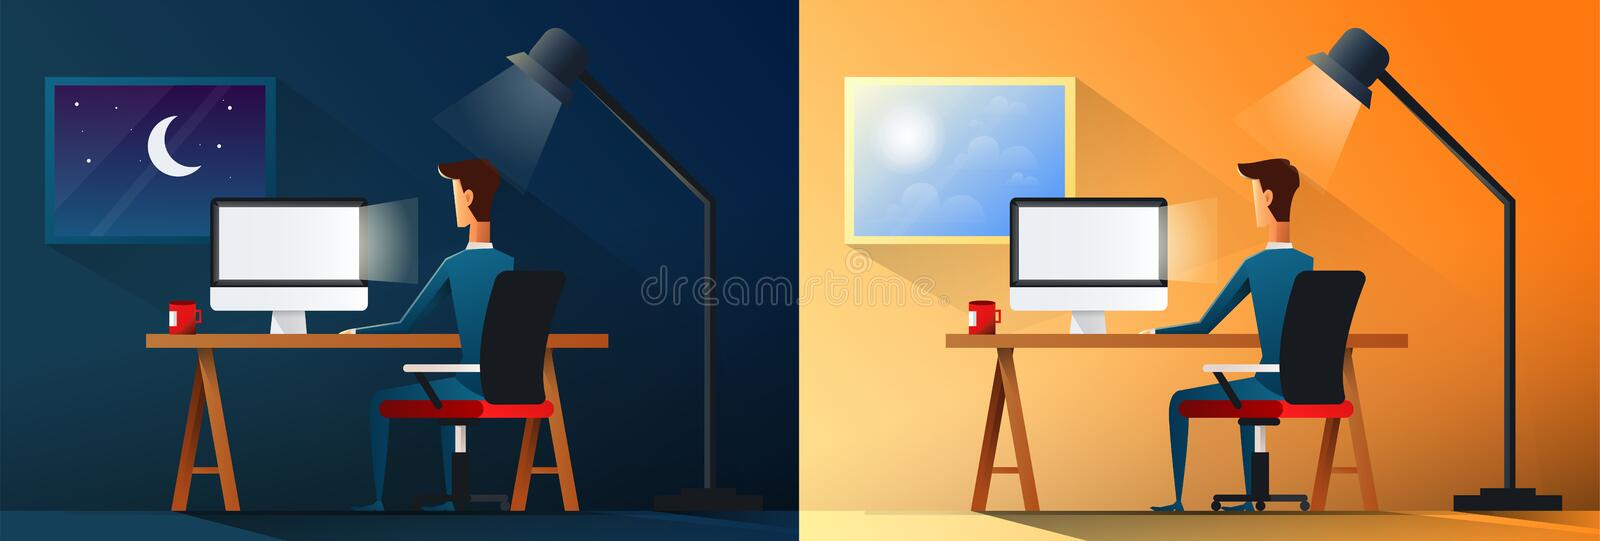 Business life or designer workaholic worker in office day and night scene vector illustration royalty free illustration